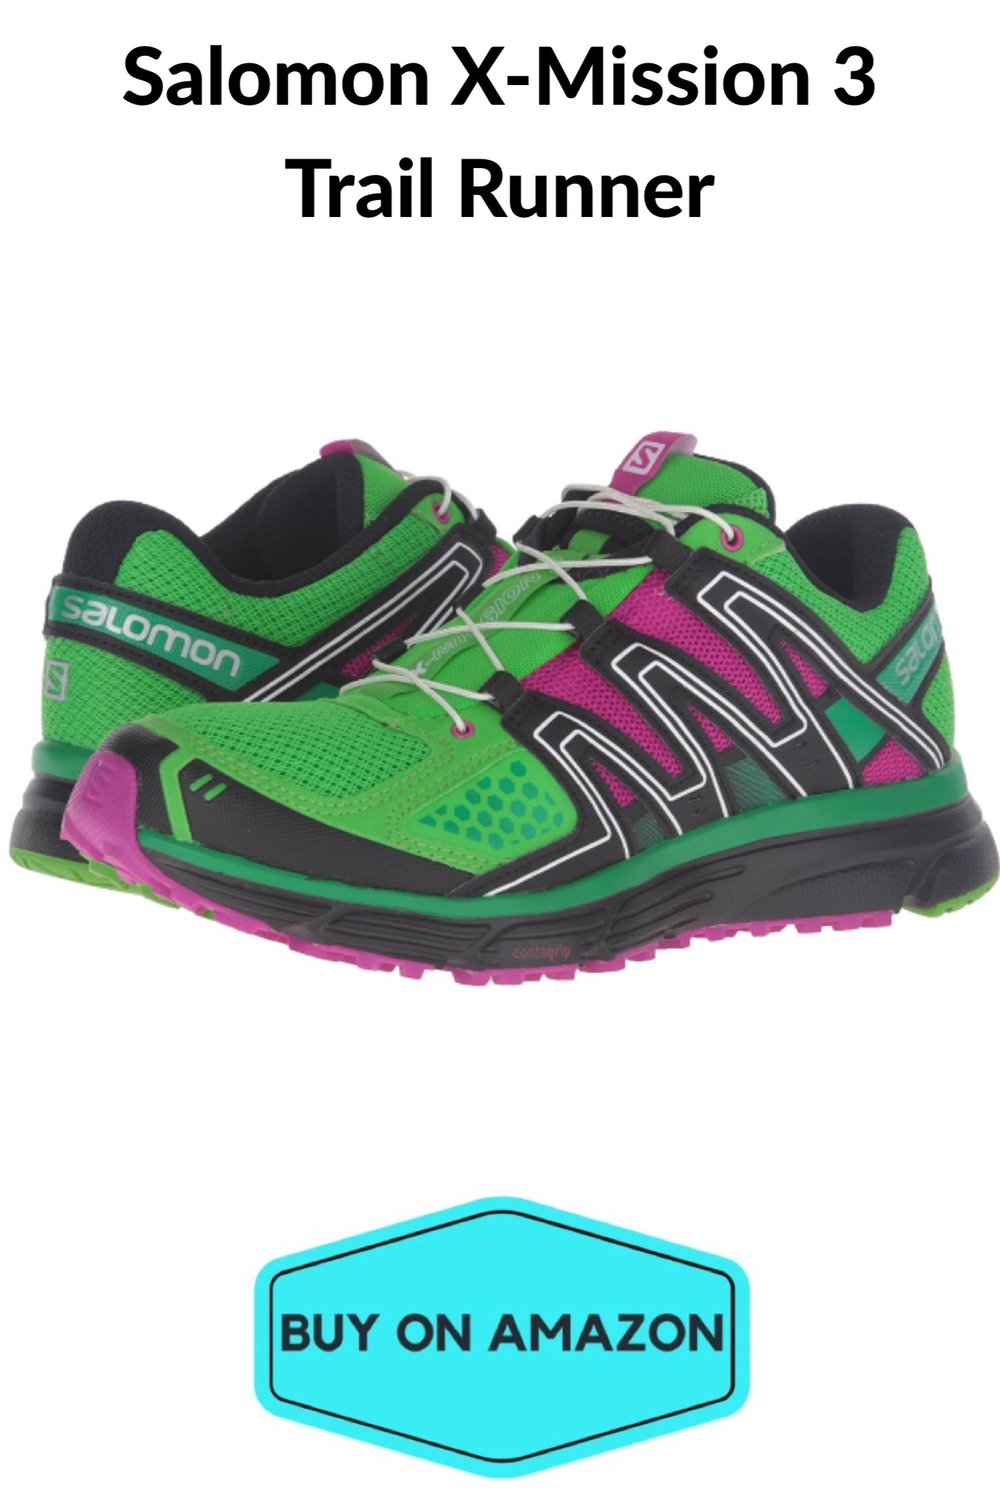 Salomen X-Mission 3 Women's Trail Runner